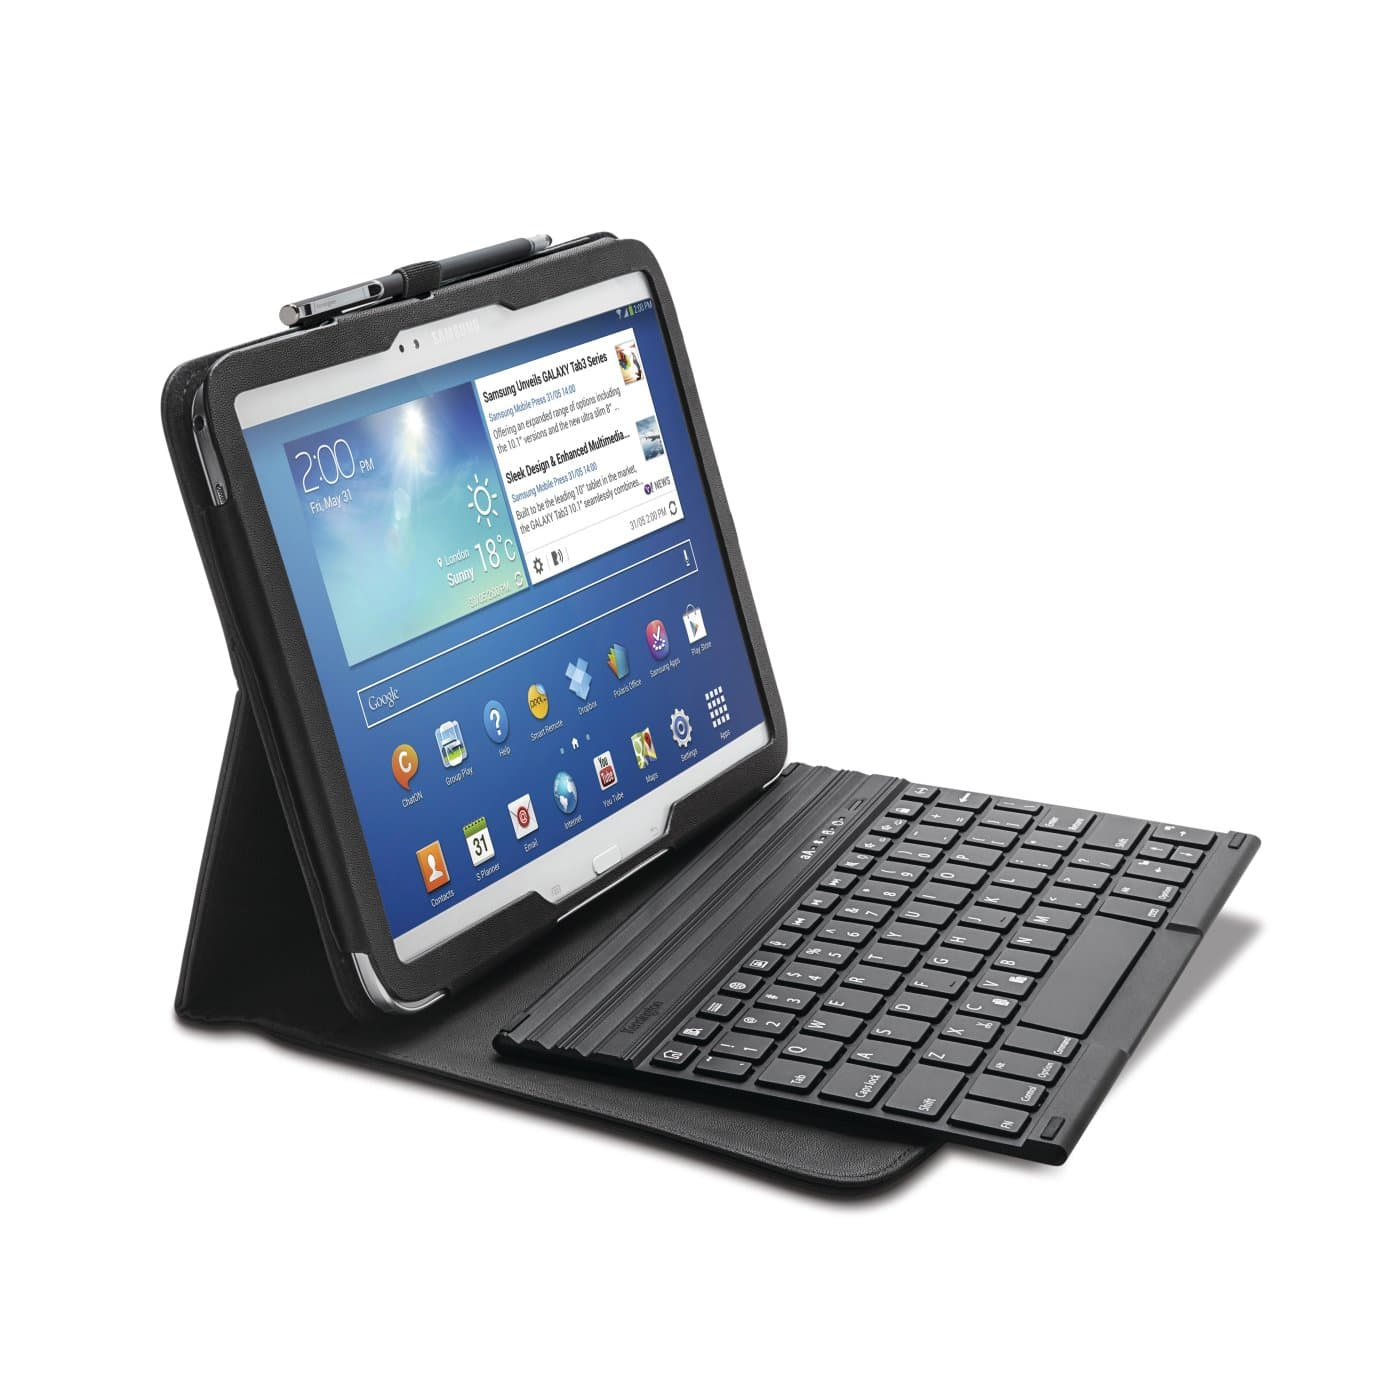 kensington products tablet smartphone accessories keyboard cases keyfolio pro folio. Black Bedroom Furniture Sets. Home Design Ideas